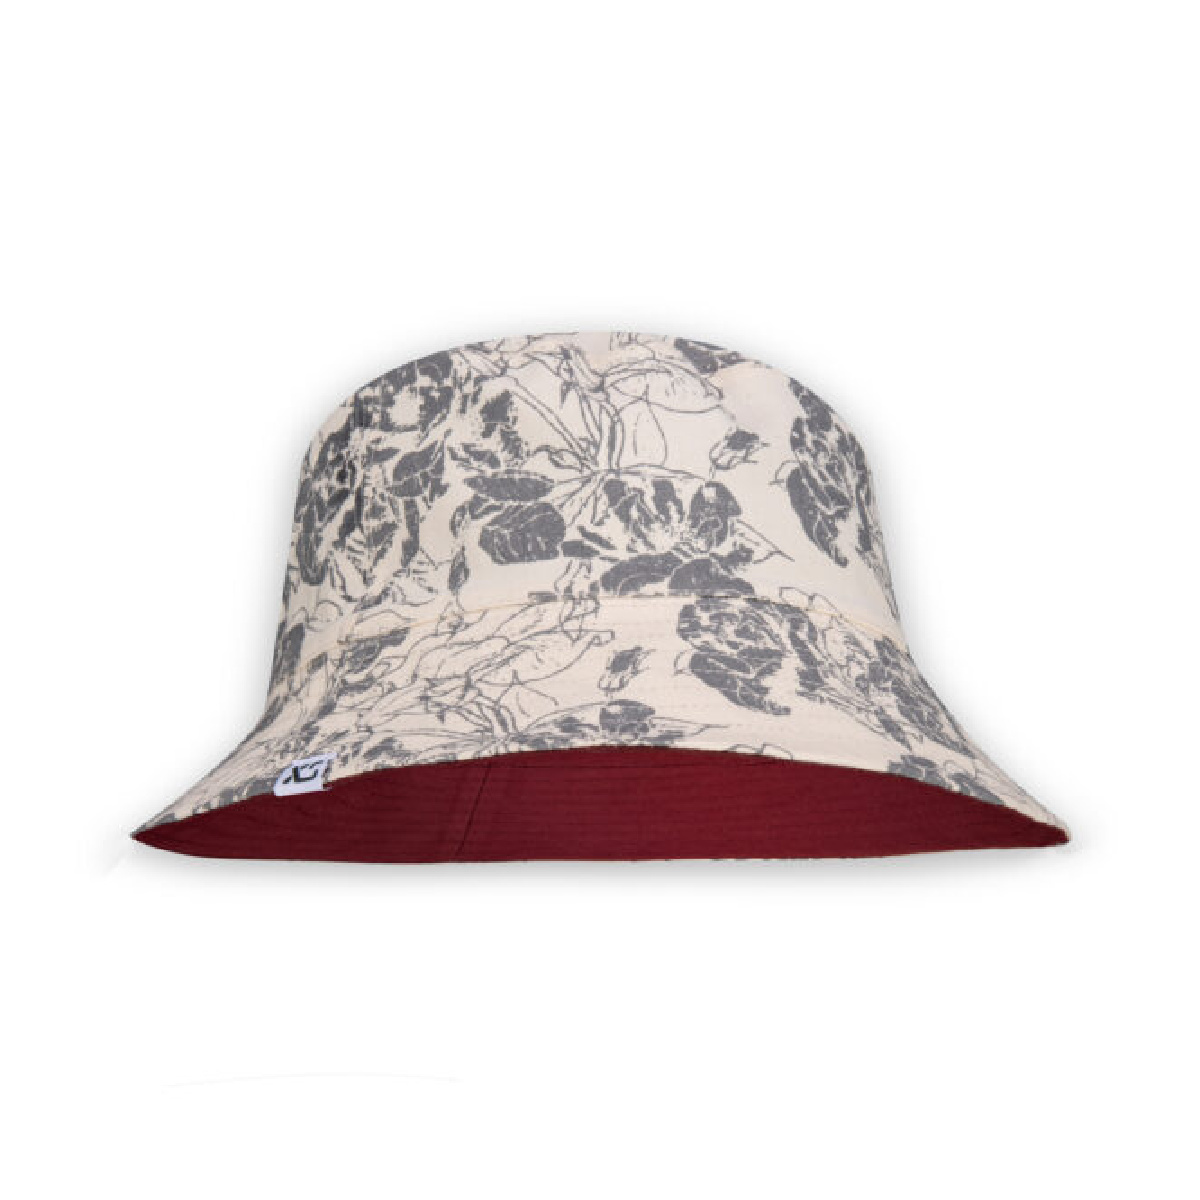 XS Unified XS Unified Kids Bucket Hat Vintage Floral